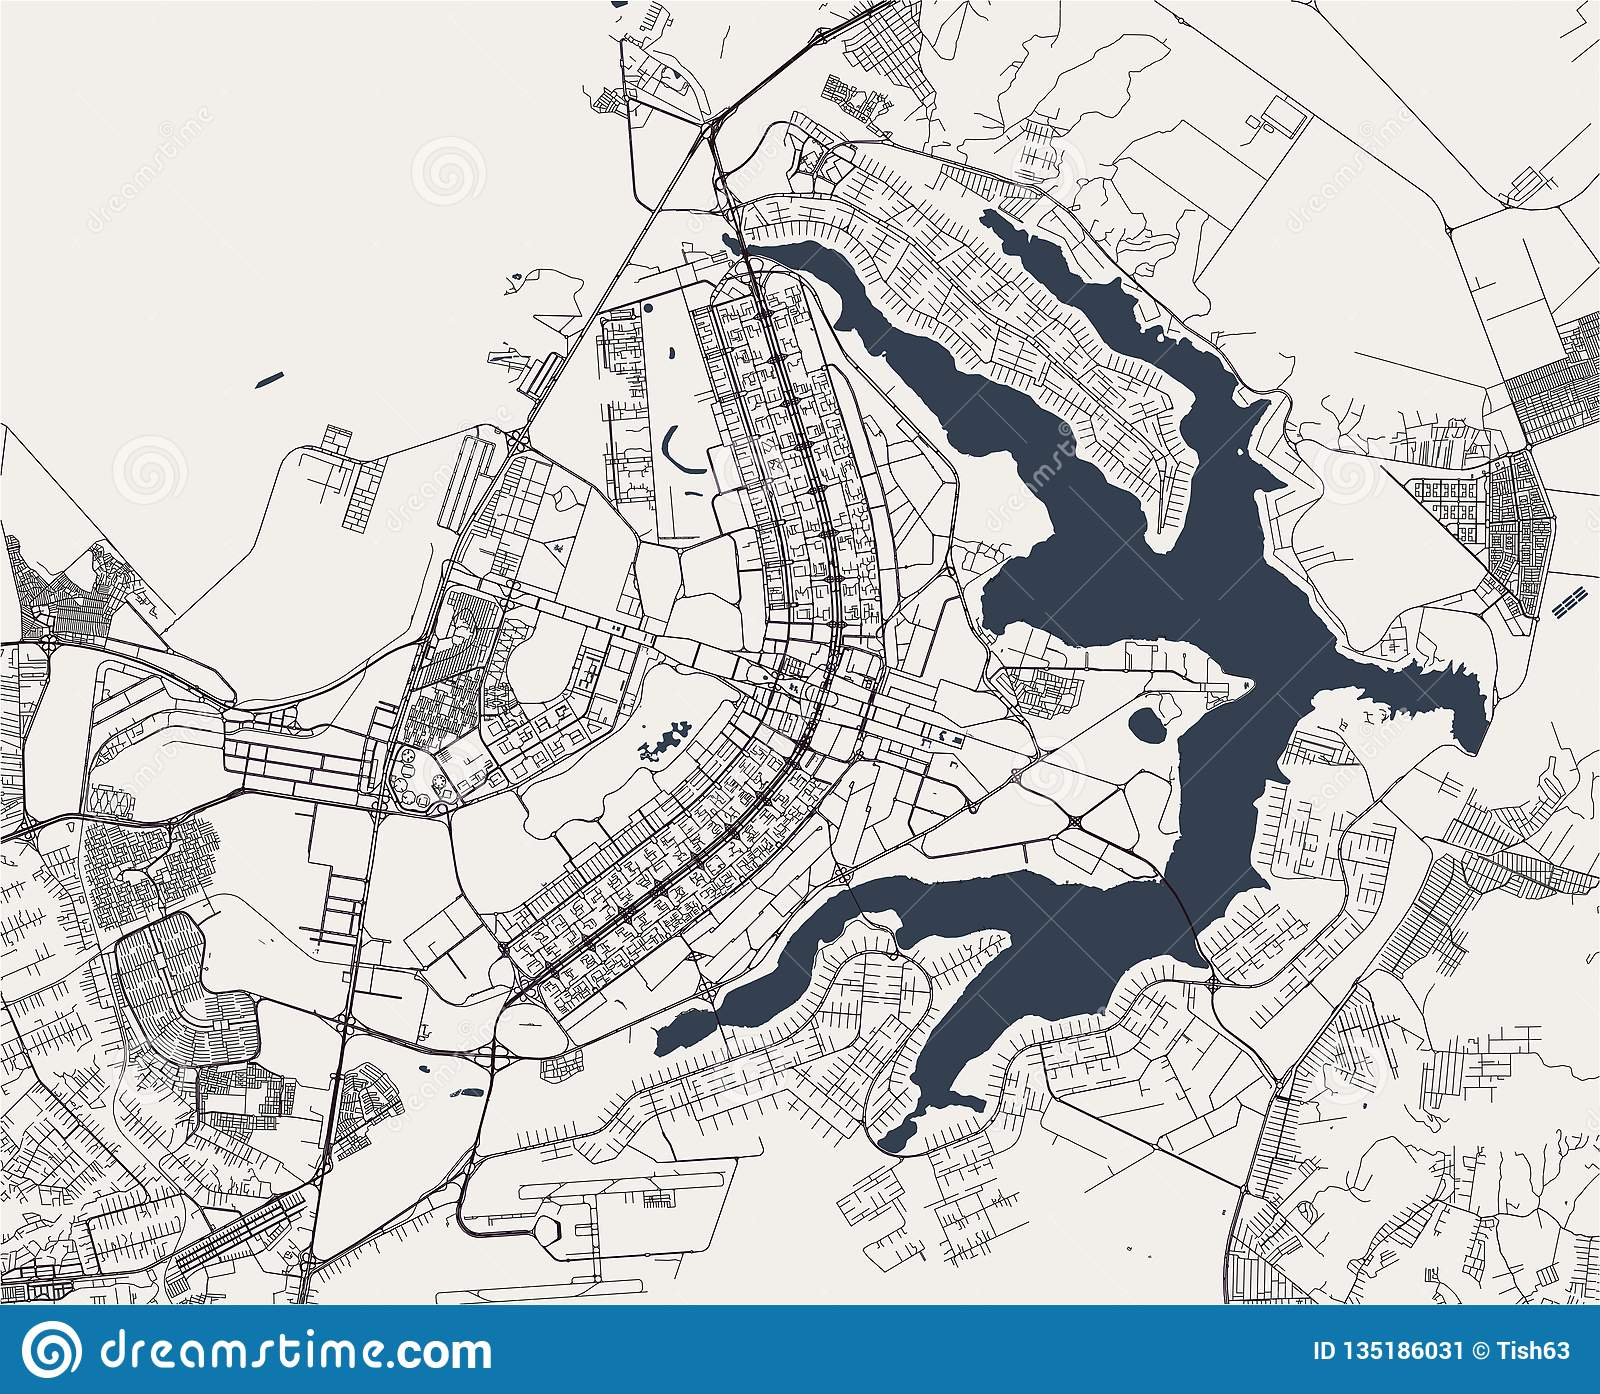 Picture of: Map Of The City Of Brasilia Capital Of Brazil Stock Illustration Illustration Of Brasilia Background 135186031